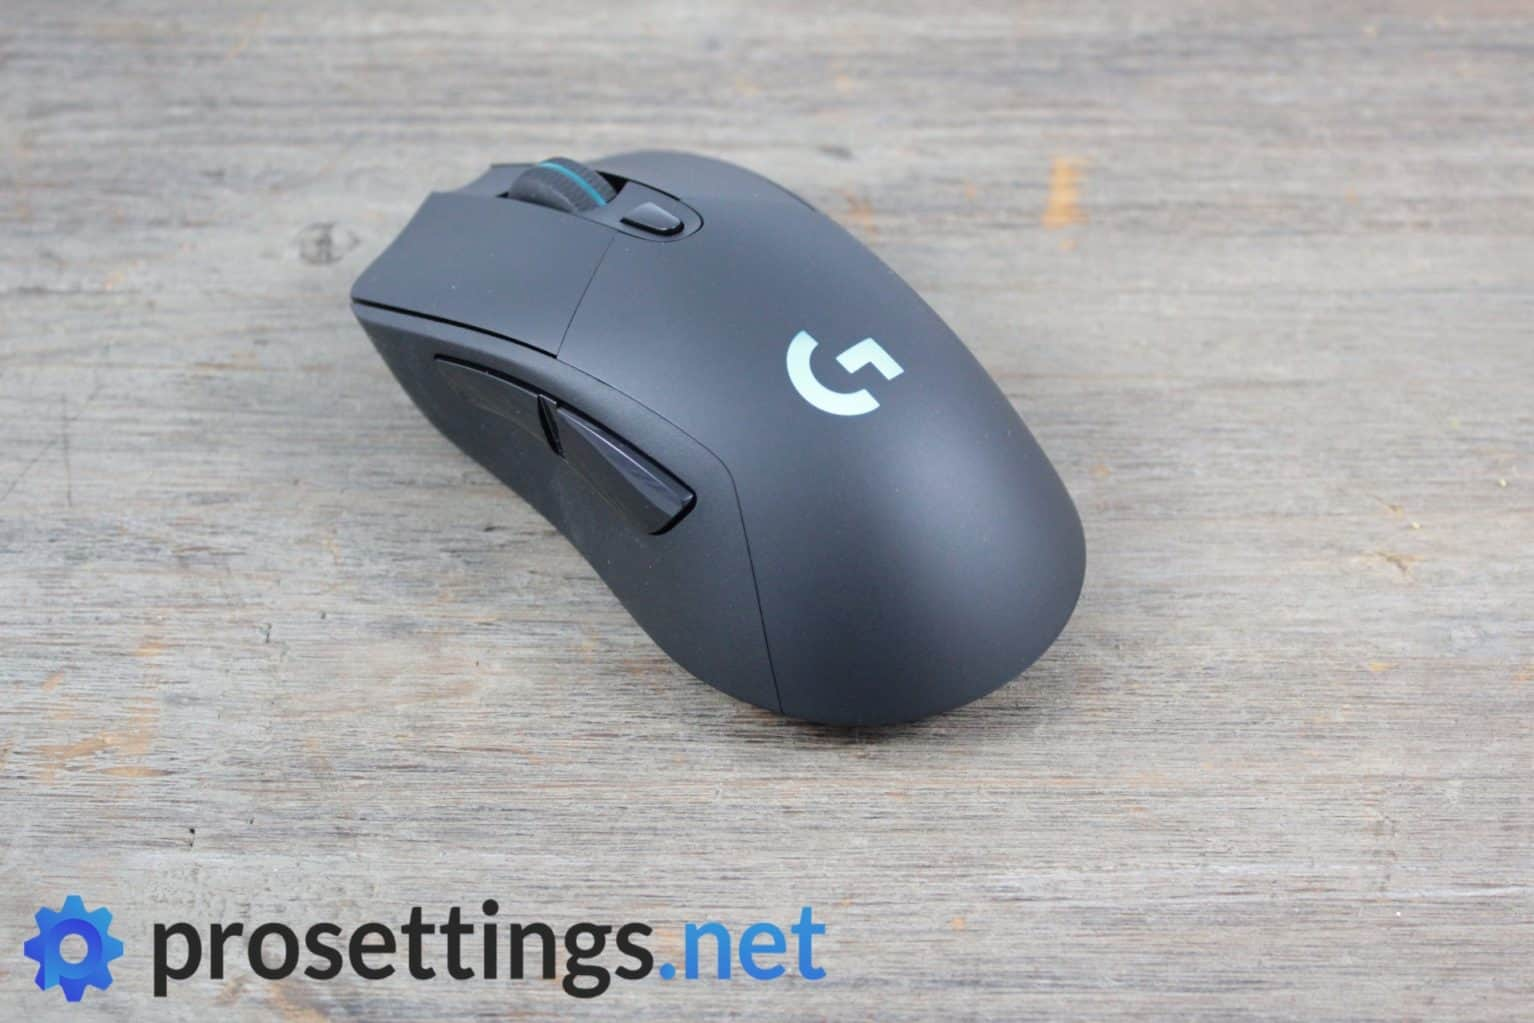 Logitech G703 Mouse Review